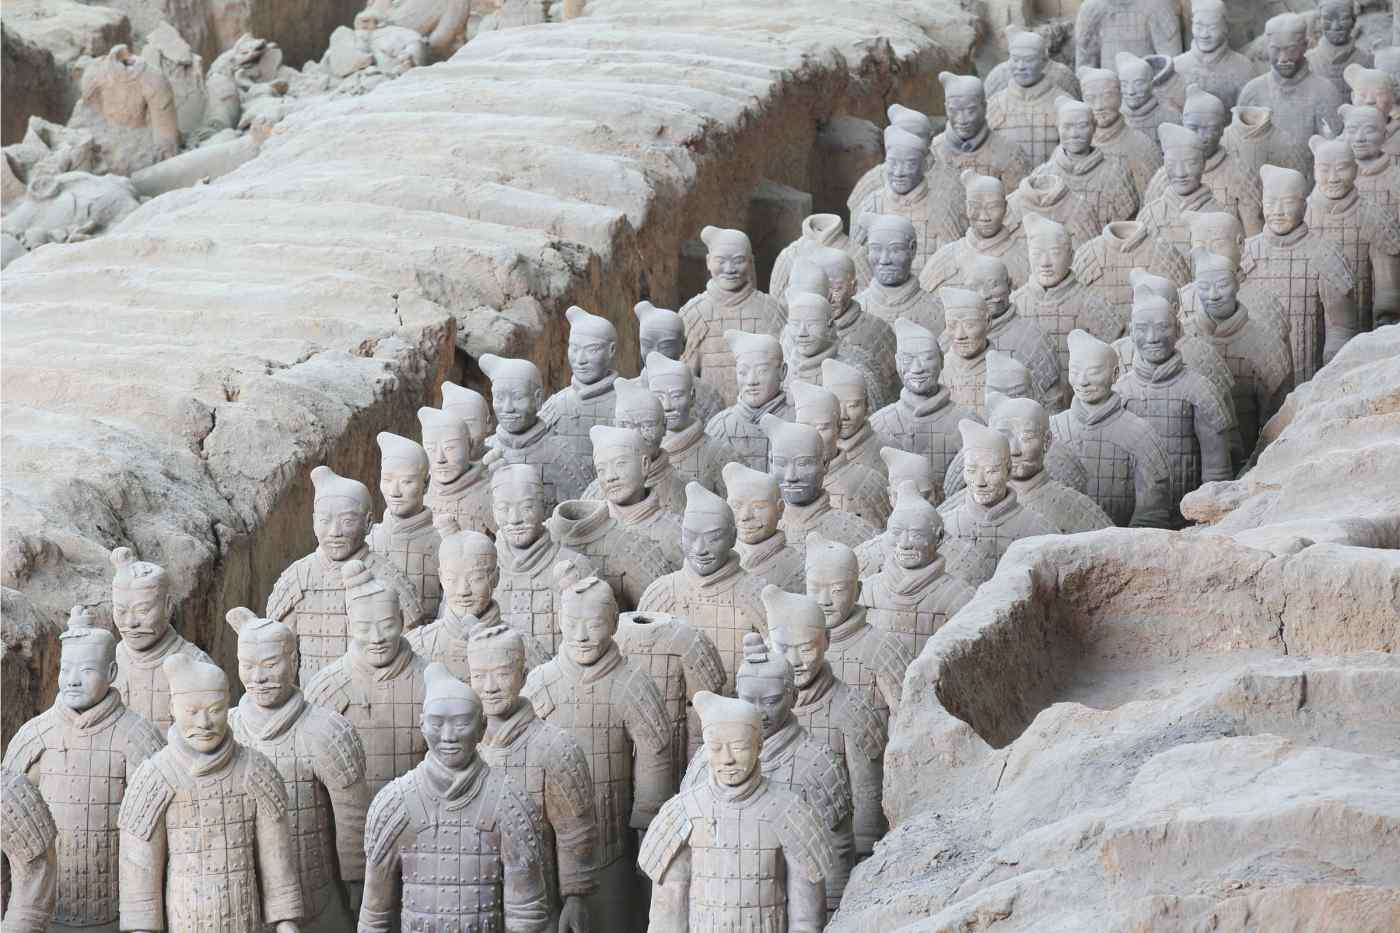 Terracotta Warriors • Xi'an, China